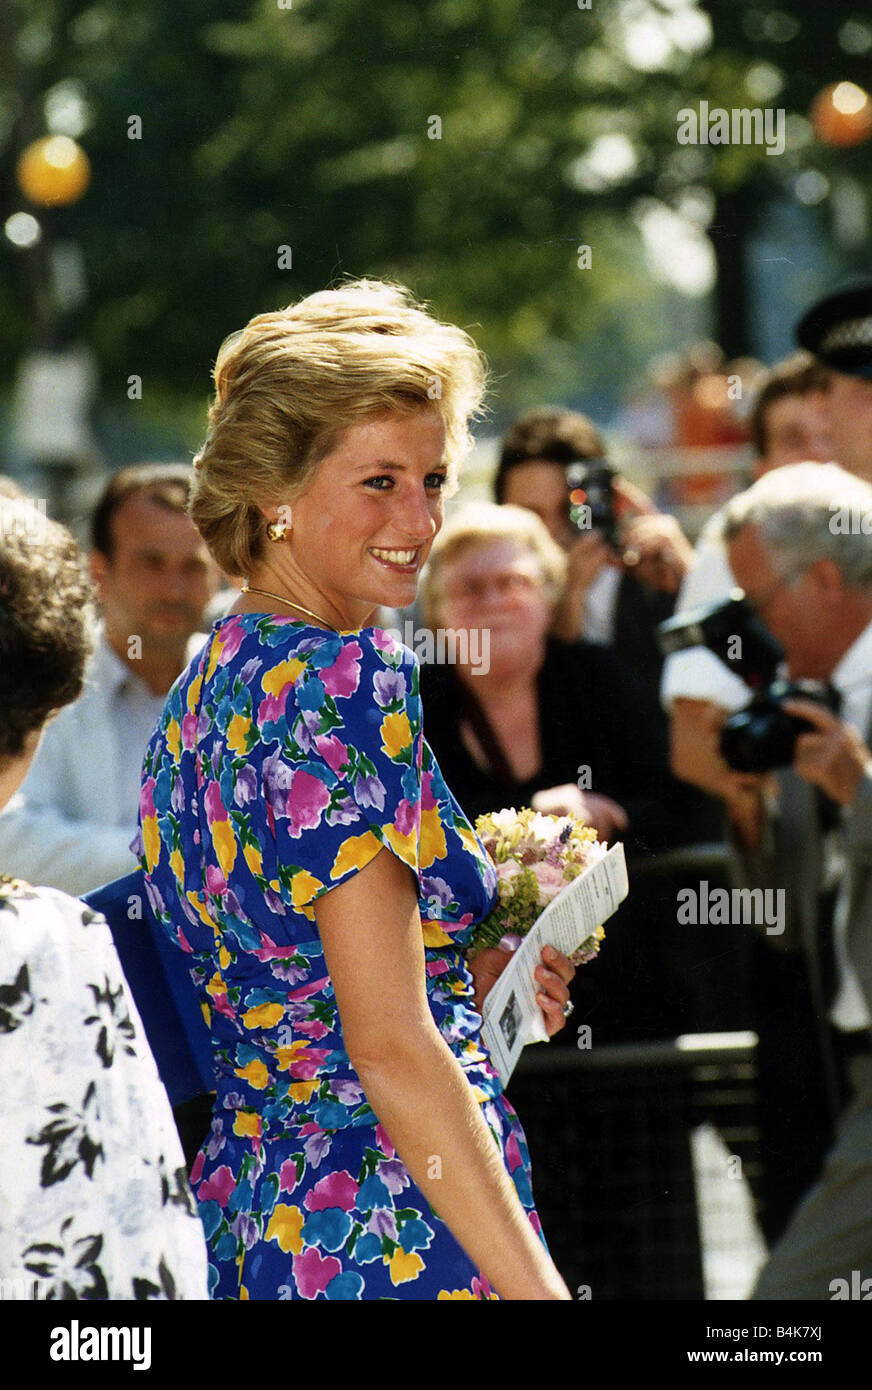 Princess Diana In Blue Dress With Flower Pattern Holding Bouquet Of